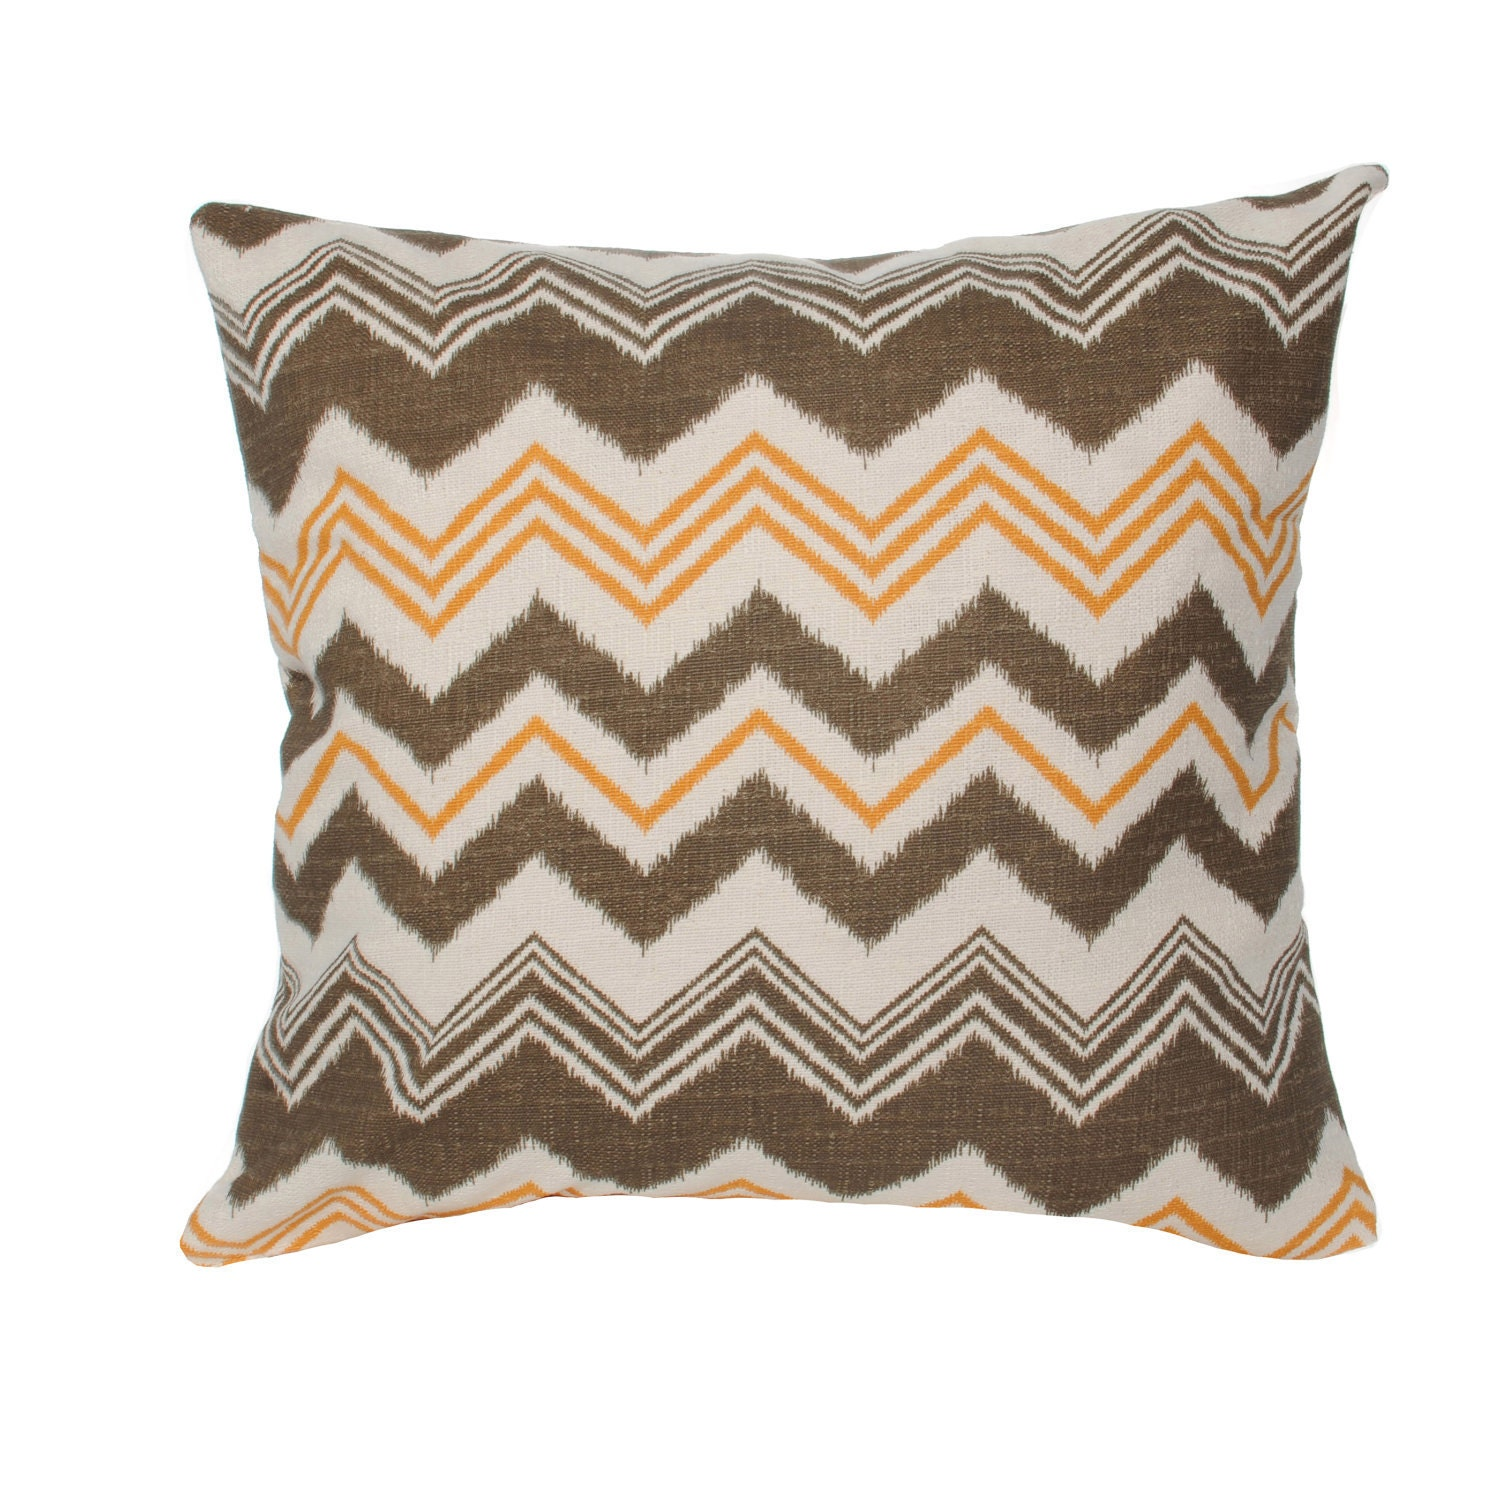 Decorative Throw Pillows Clearance : Items similar to Clearance Decorative Pillow Cover Bohemian Chevron in Brown and Orange 20x20 ...